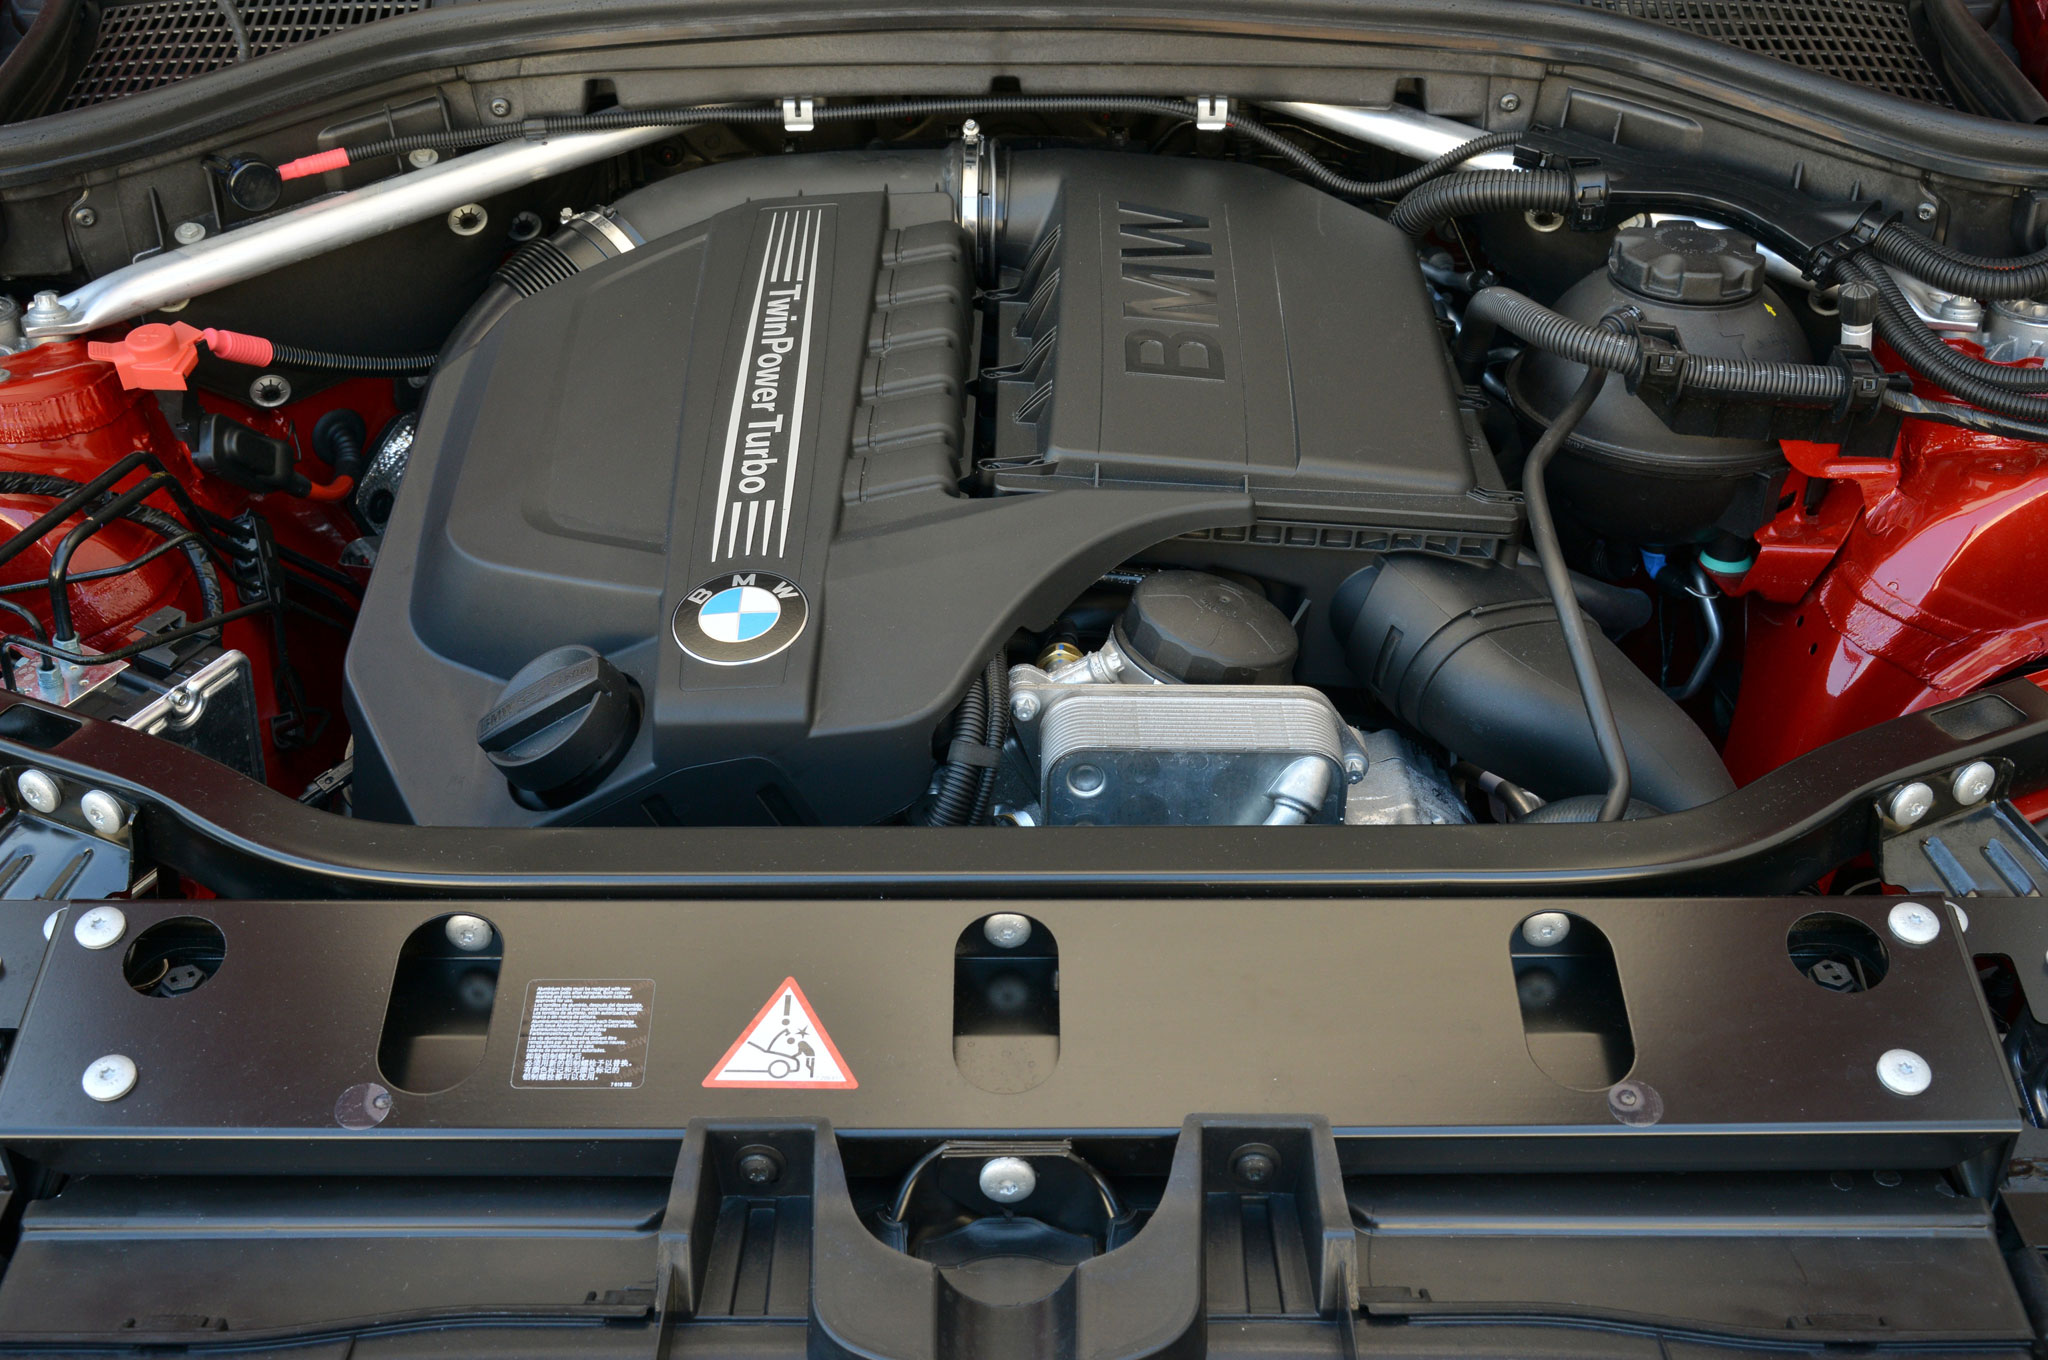 2015 Bmw X4 Engine View (Photo 2 of 13)